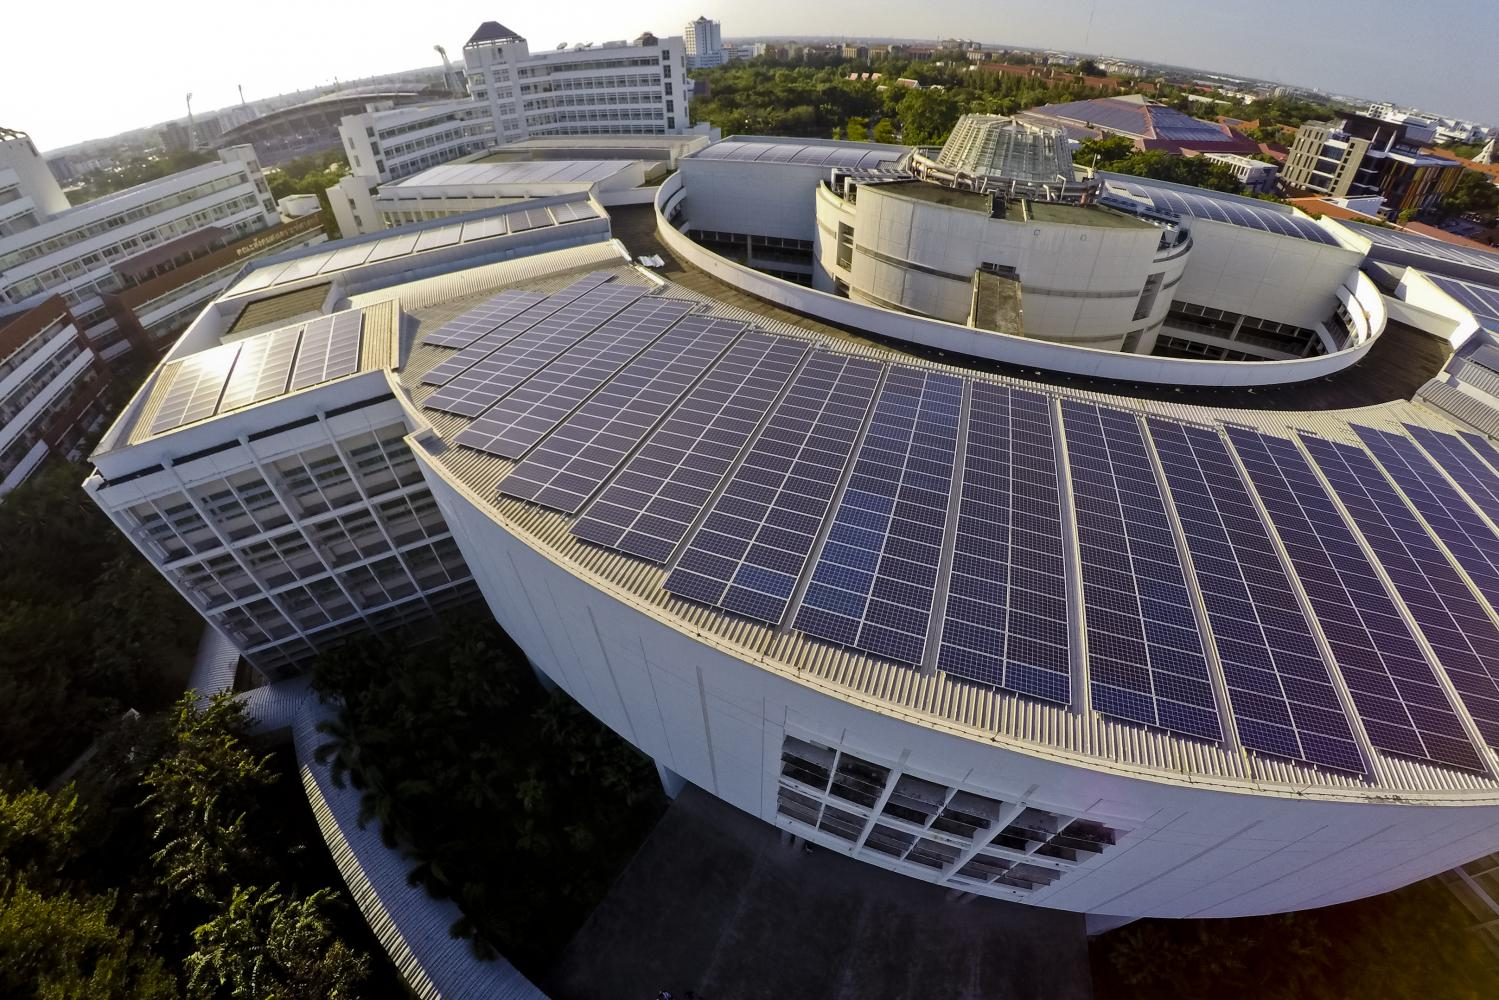 FLARE FOR DESIGN: The solar rooftop at Thammasat University's Rangsit Campus is the largest among all universities in Asia, and ranked fourth in the world in terms of size.